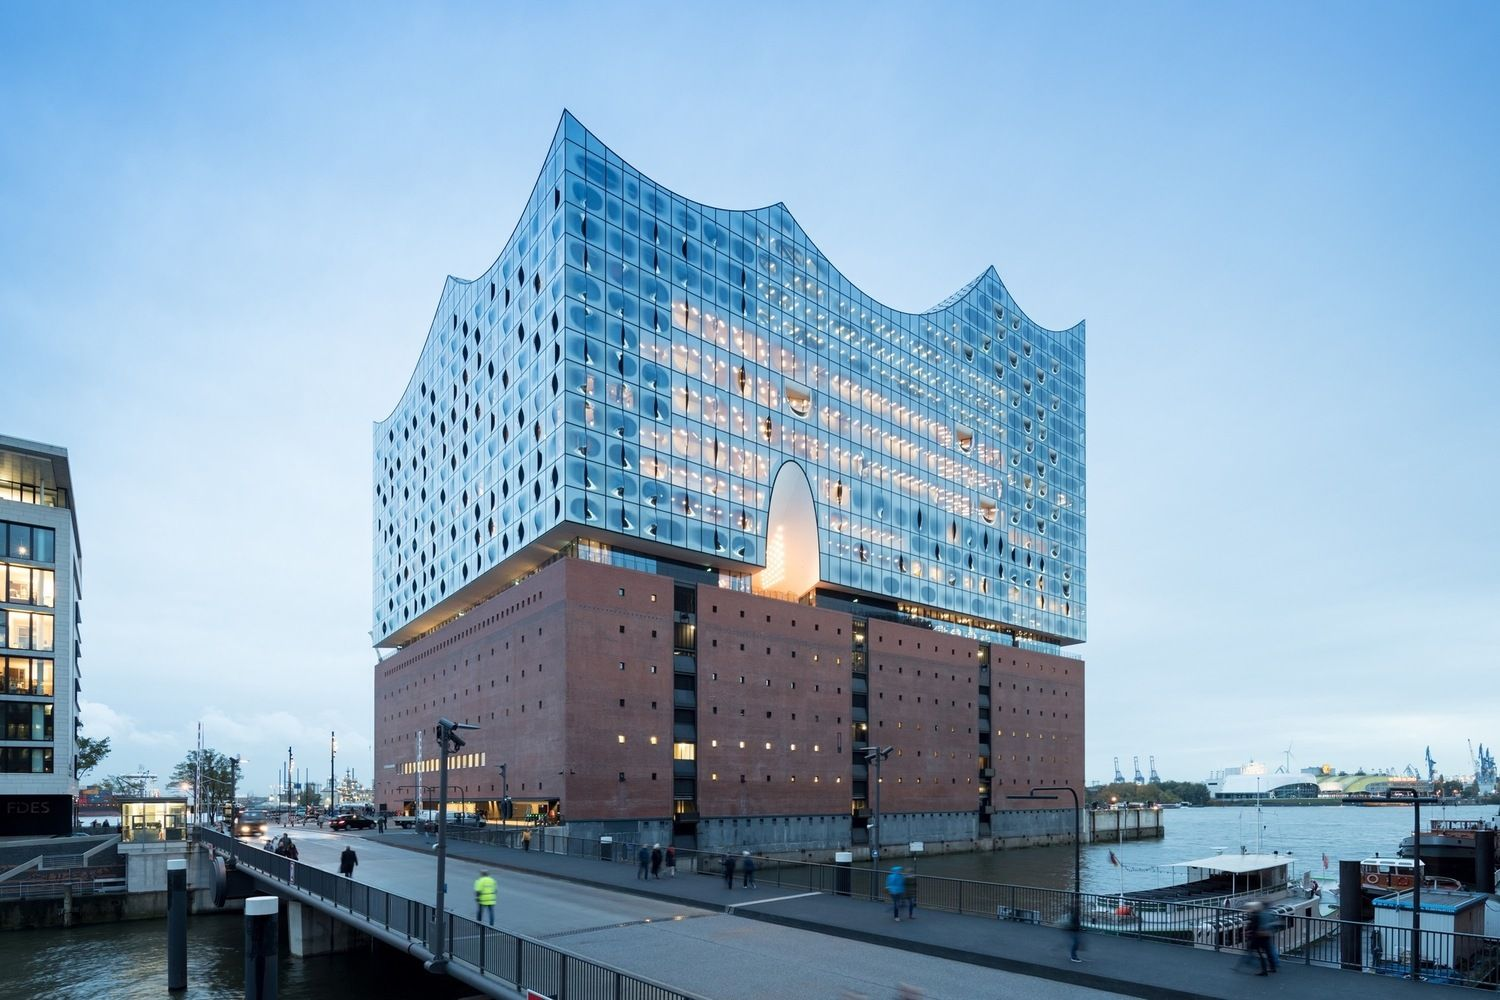 Gallery Of Donotsettle Takes Us Inside Herzog De Meuron S Hamburg Elbphilharmonie During Its Opening 4 Cultural Architecture Elbphilharmonie Hamburg Architecture